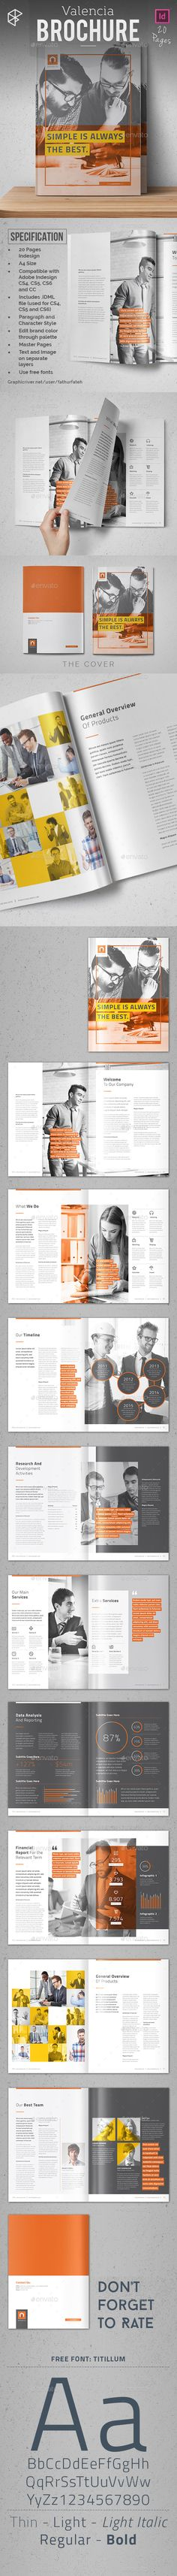 Valencia Brochure Template InDesign INDD. Download here: http://graphicriver.net/item/valencia-brochure/16288654?ref=ksioks